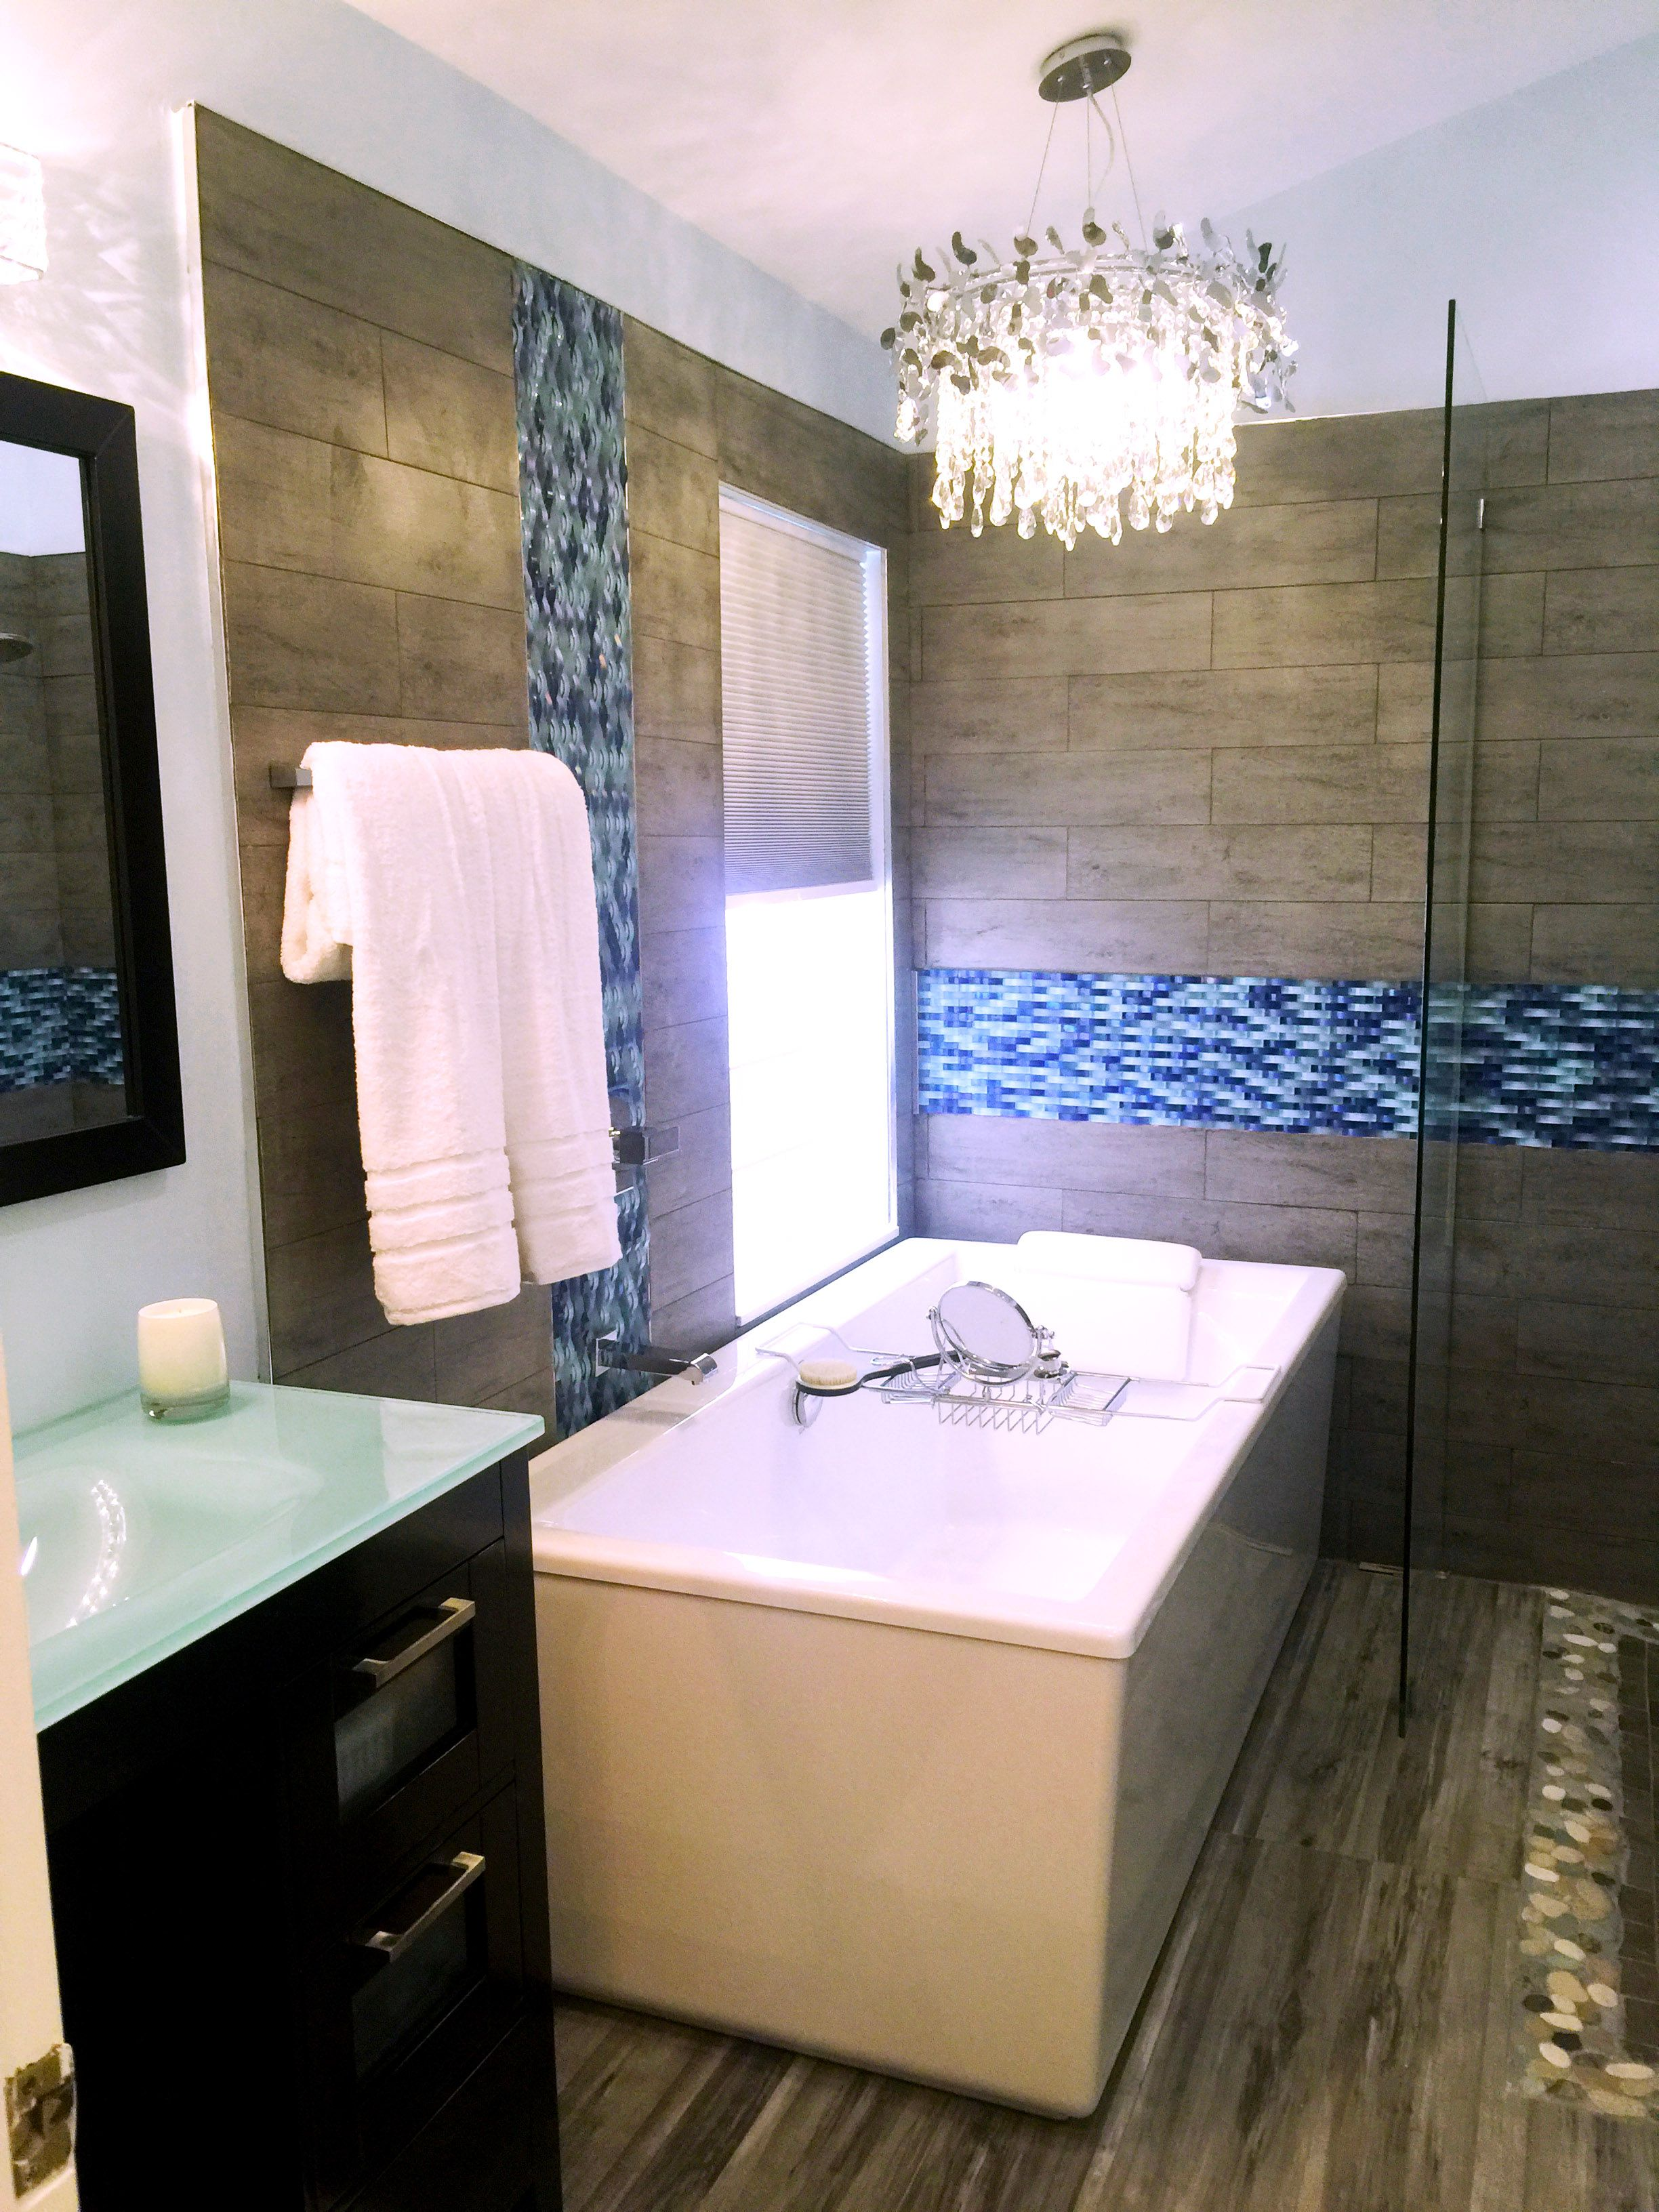 Bathroom Remodeling Boca Raton bathroom remodel. love the blue ripple stream mosaic glass tile